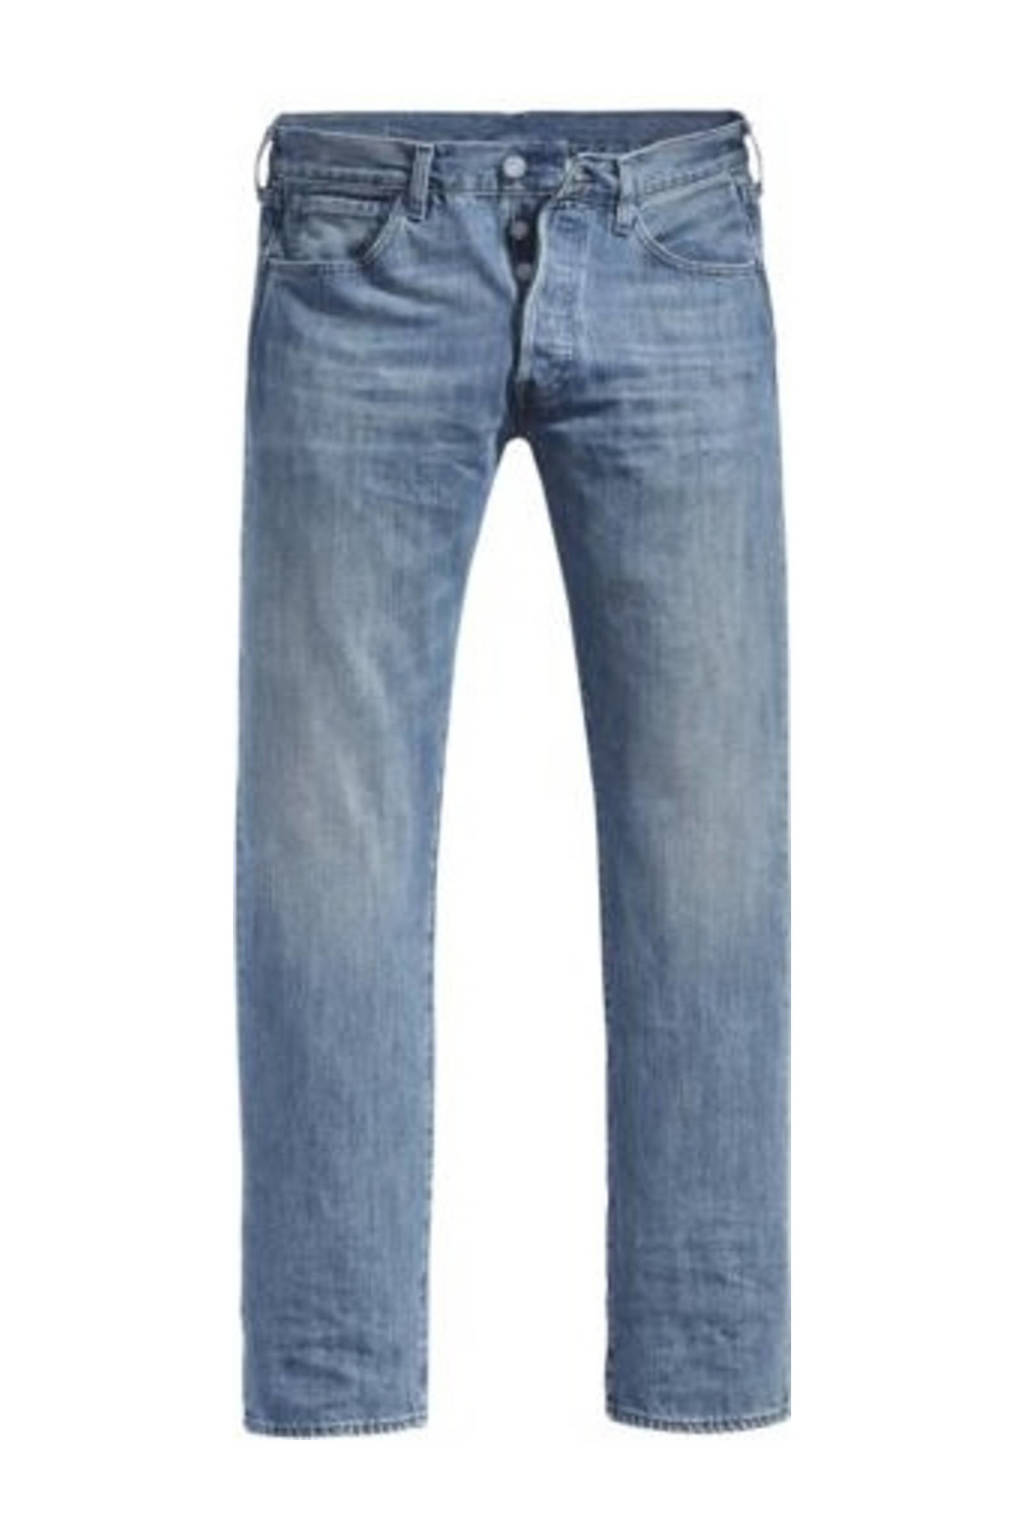 Levi's Big and Tall straight fit jeans 501 t.b. light indigo - worn in, T.B. Light Indigo - Worn In